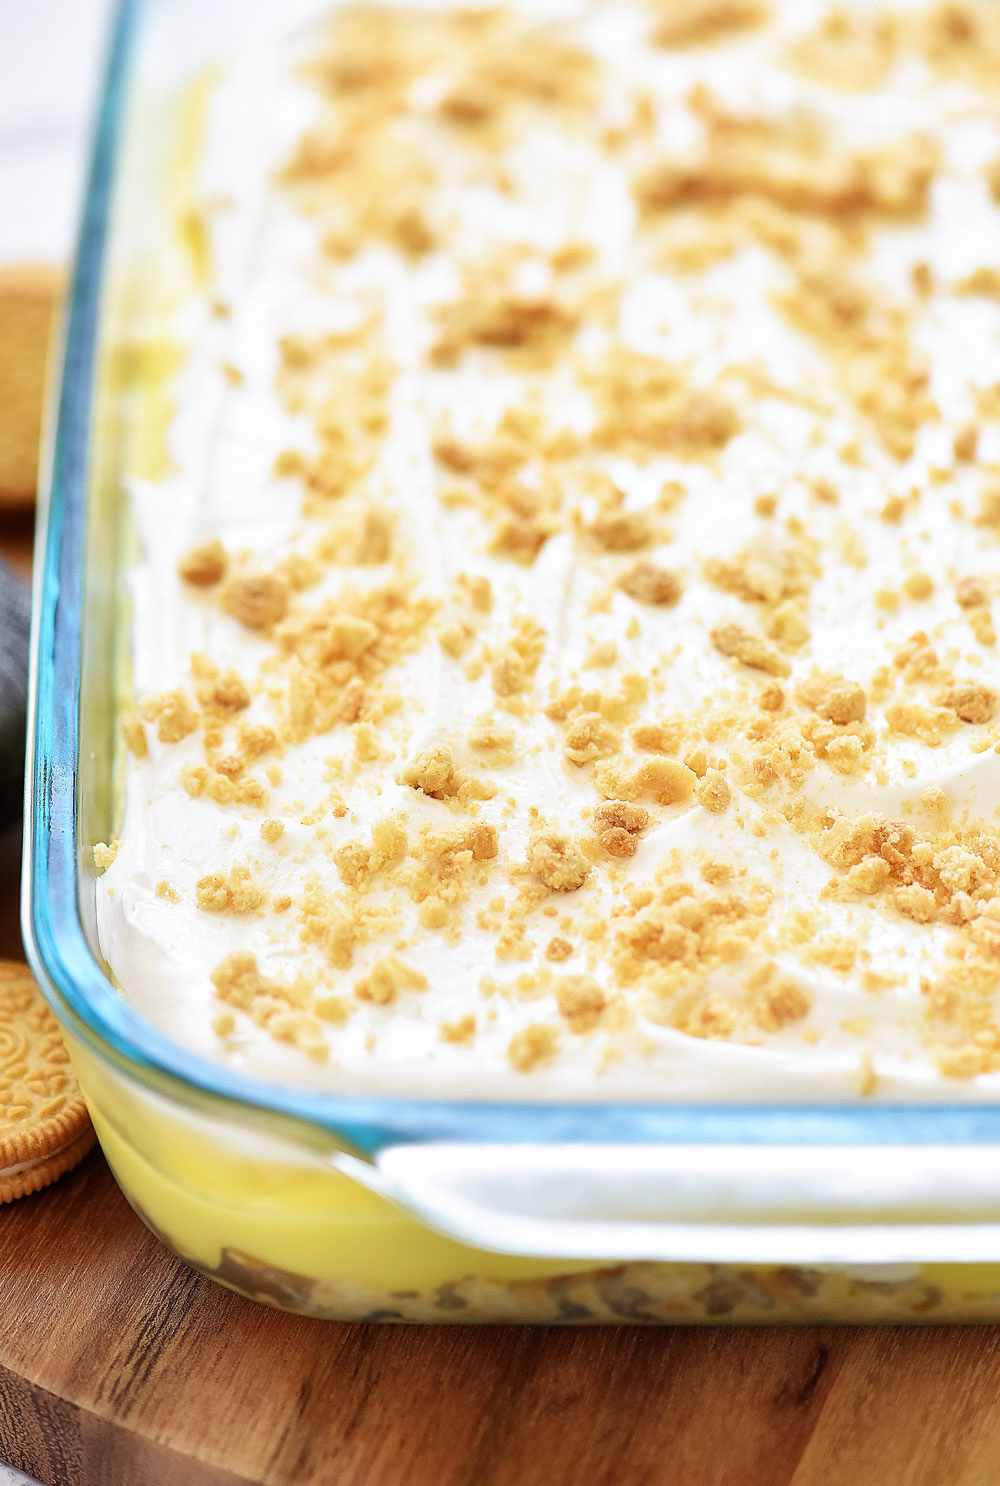 Heavenly Lemon Oreo Dessert has layers of golden oreo cookies, cream cheese, and lemon pudding. Life-in-the-Lofthouse.com